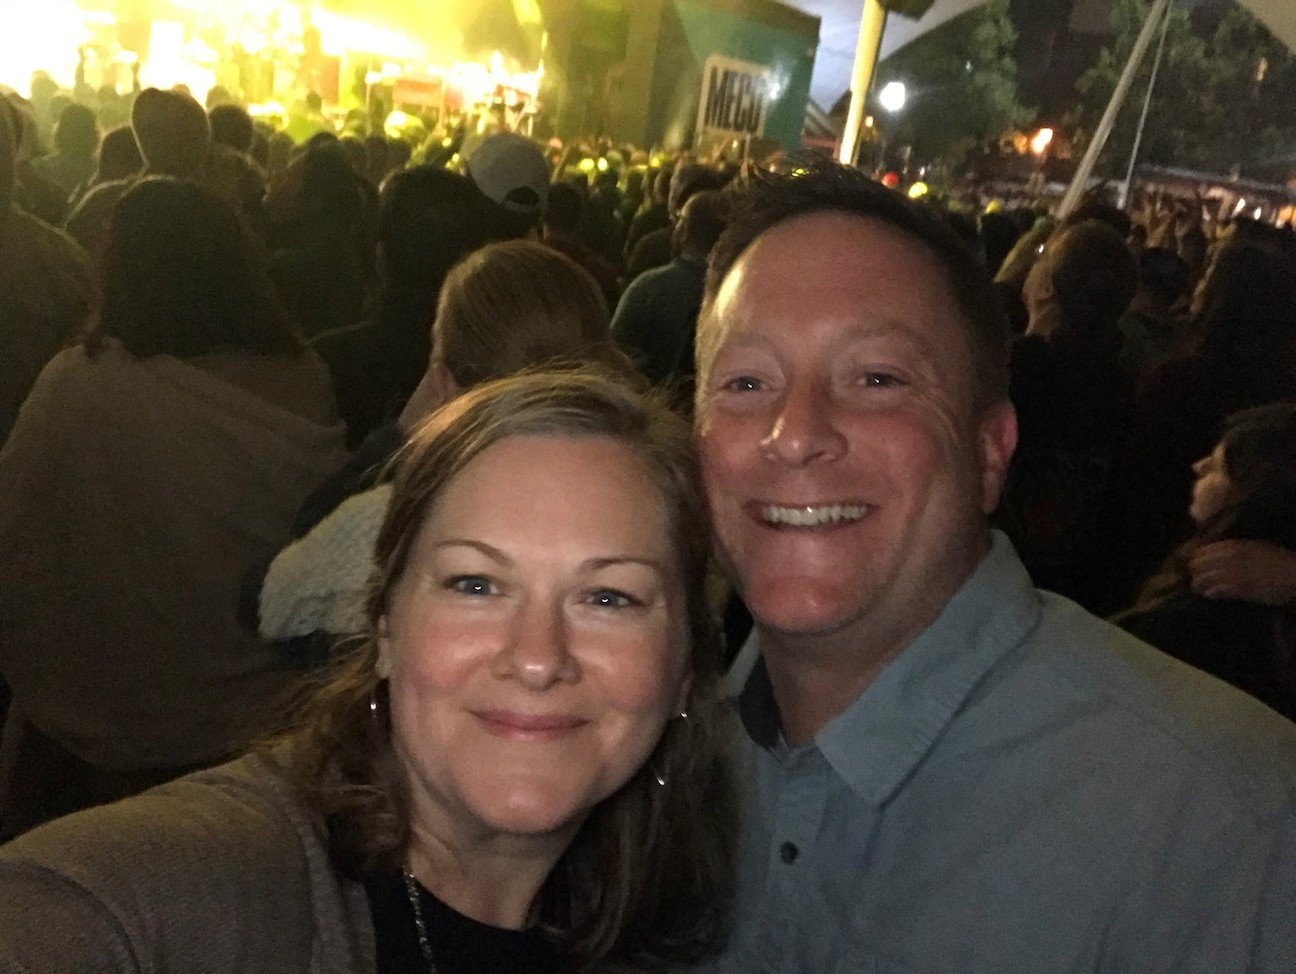 Adam Smith at a concert with his wife, Sarah